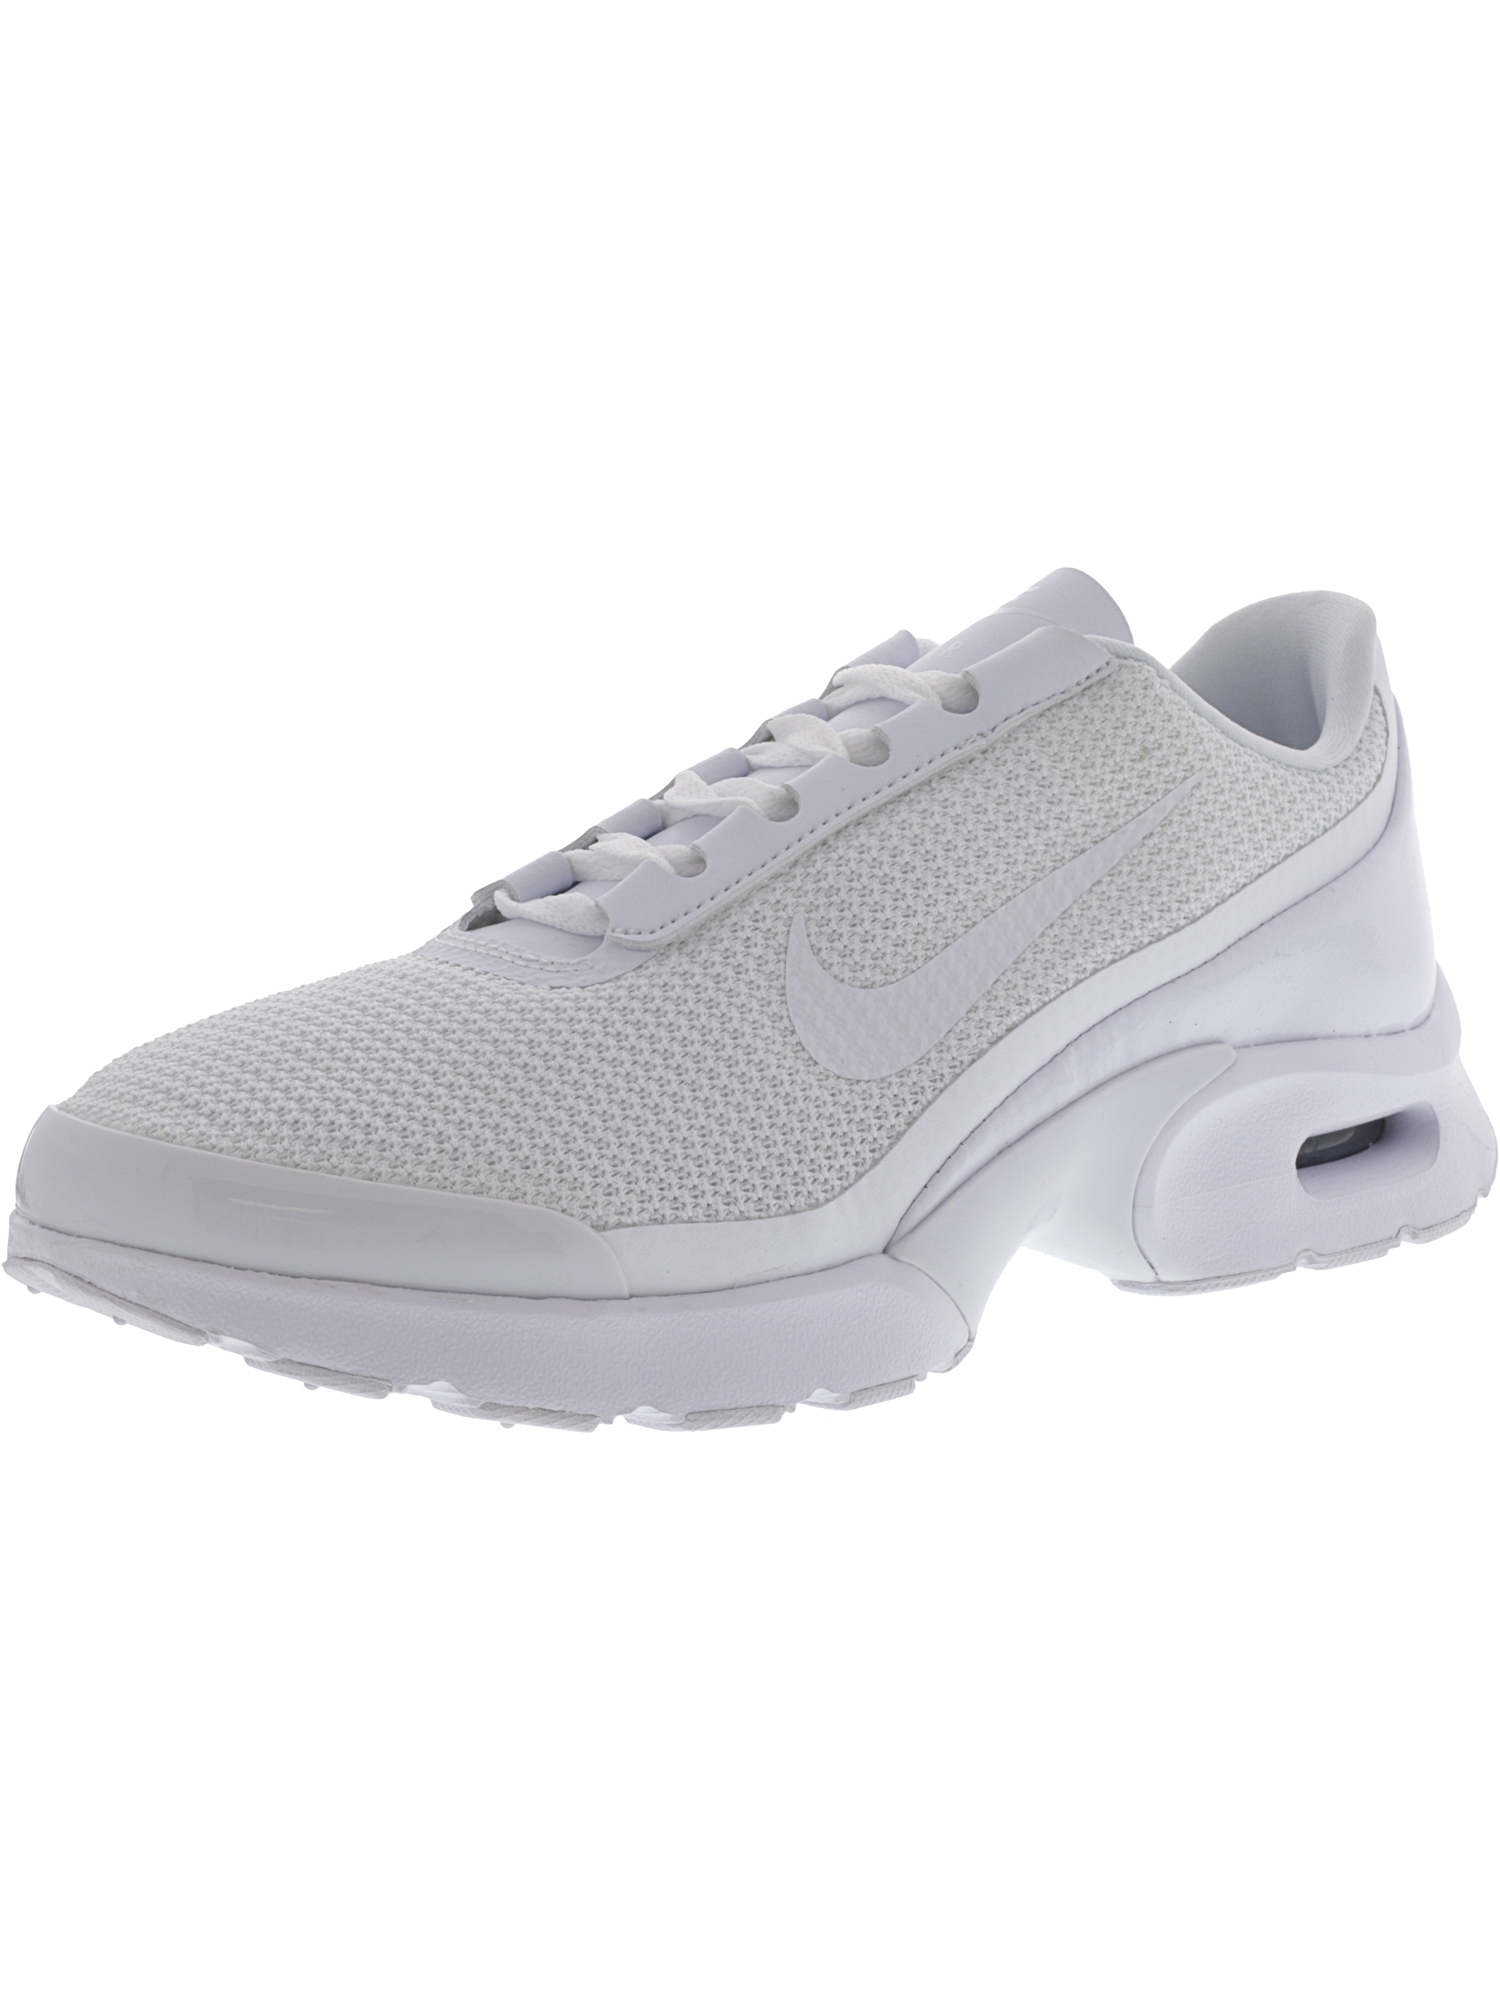 Nike Air Max Jewell Ankle High Walking Shoe